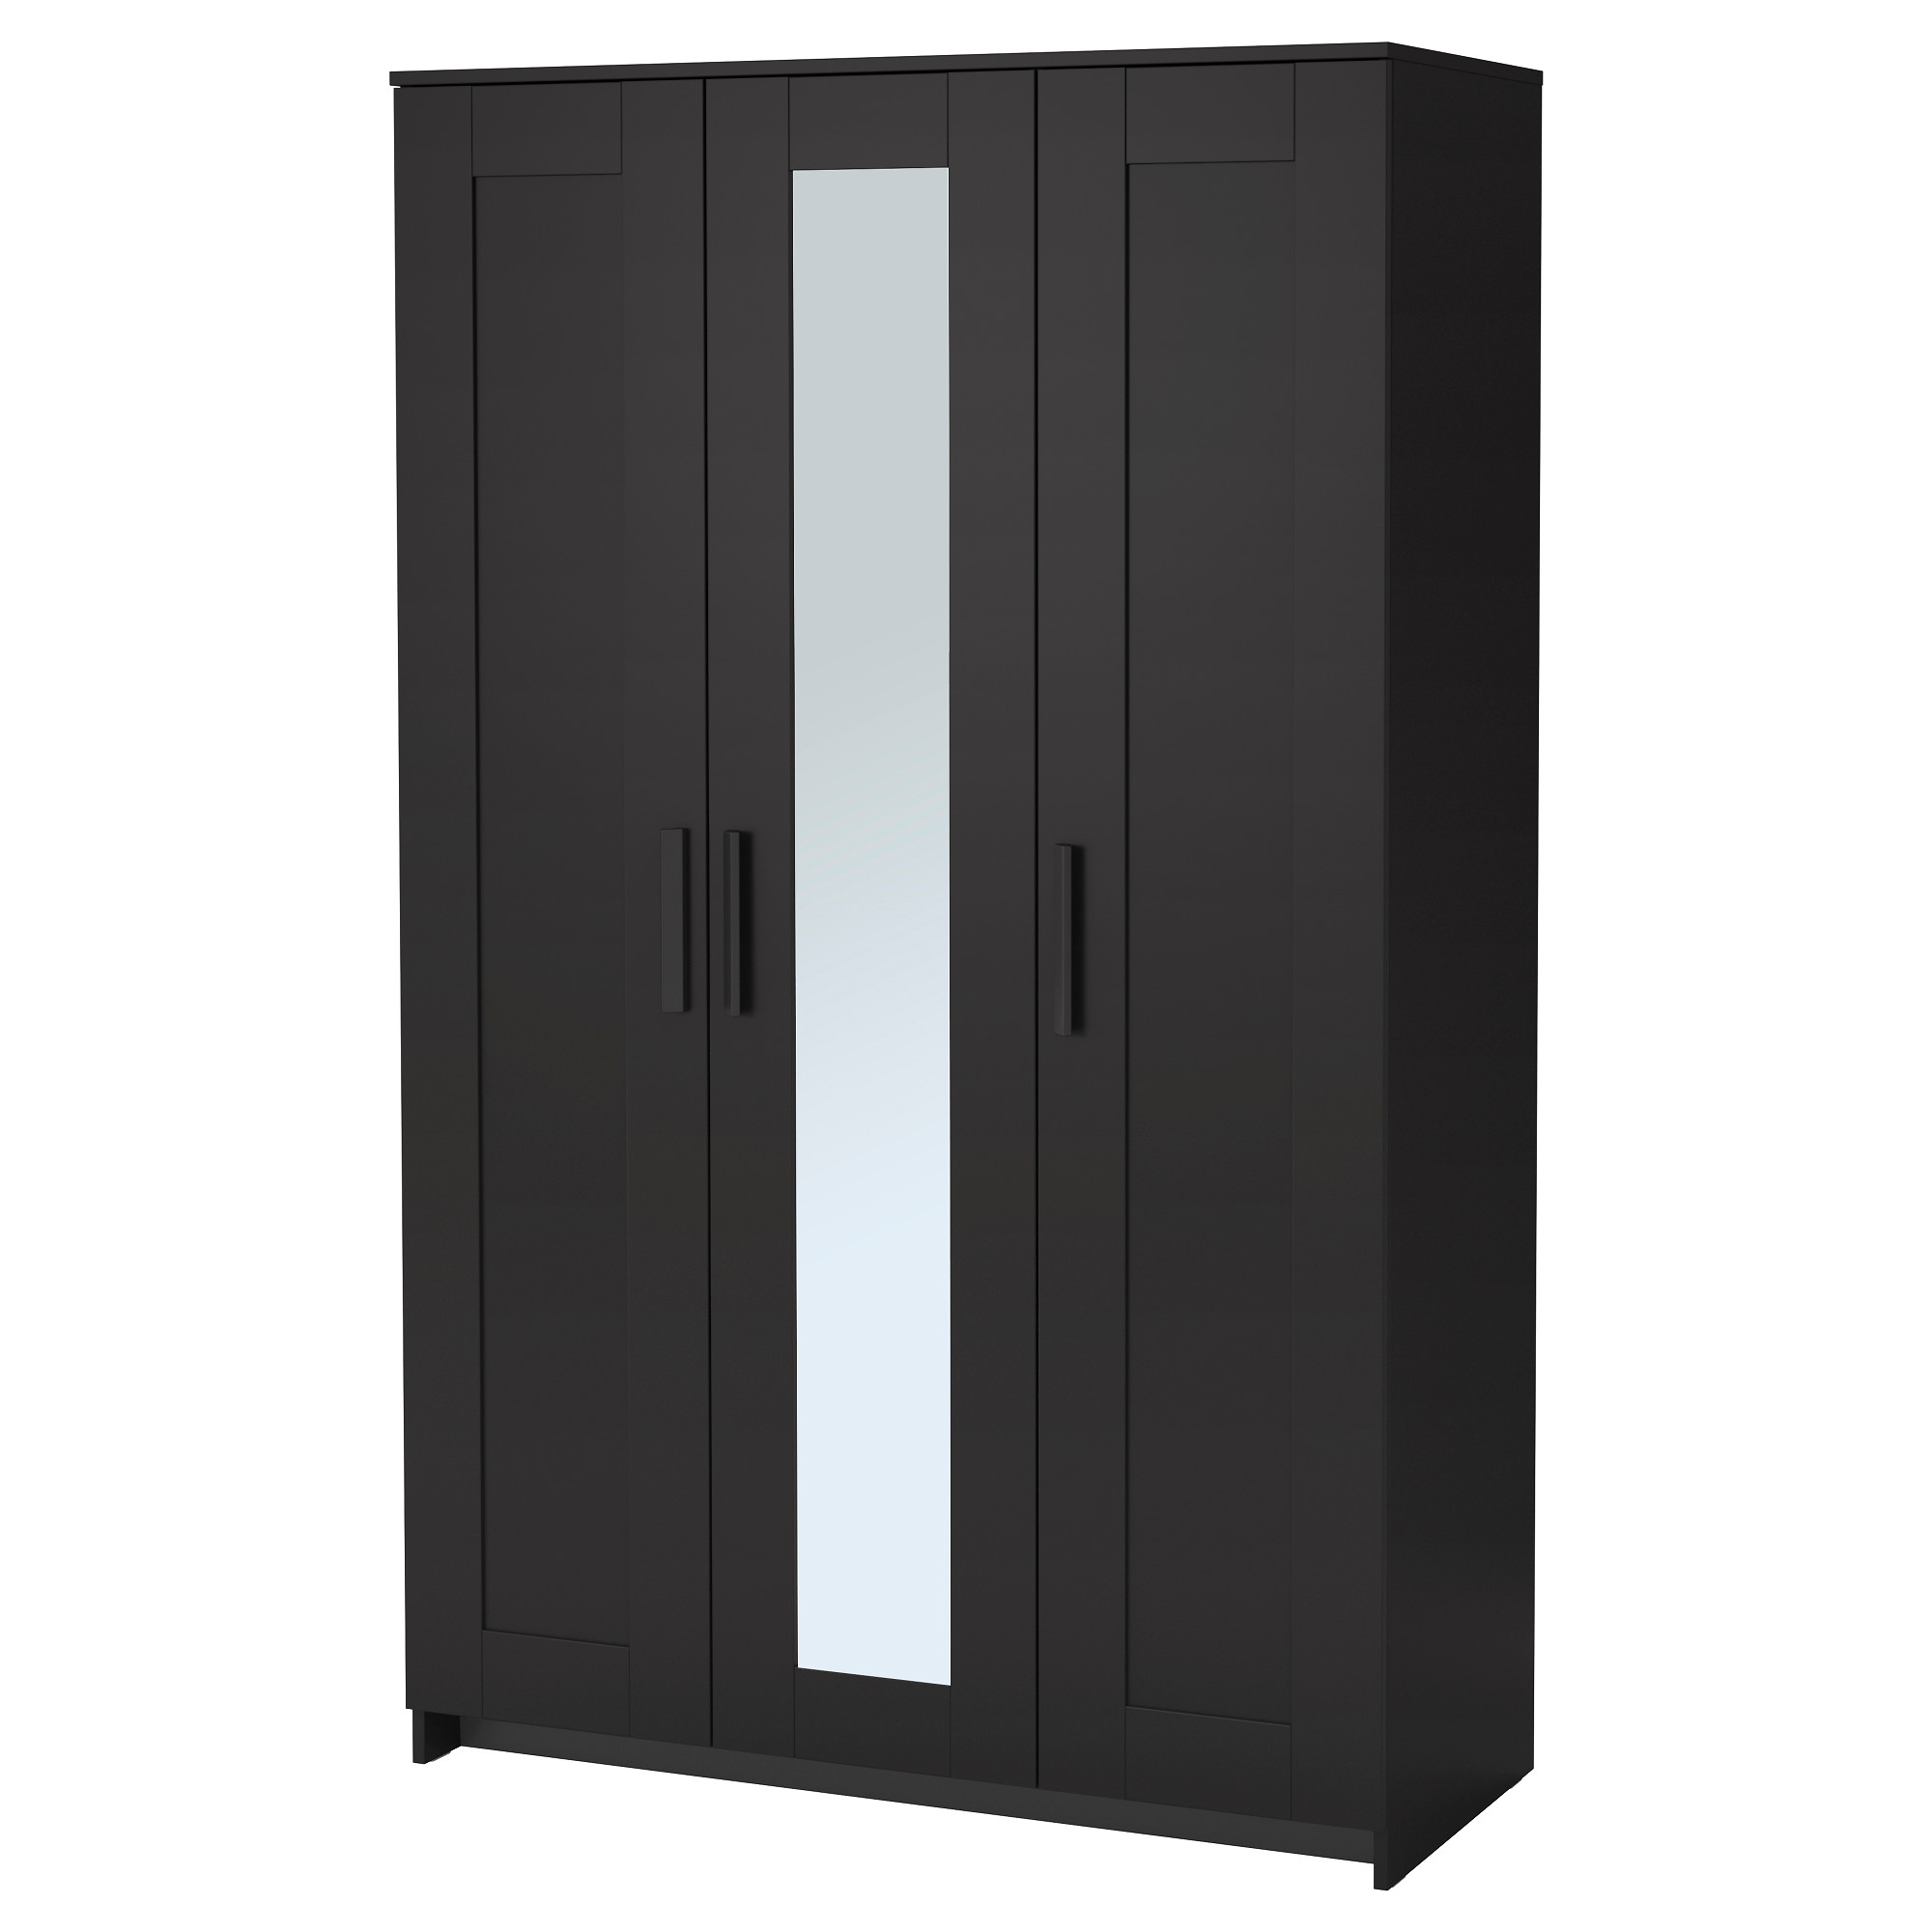 BRIMNES Wardrobe With Doors Black IKEA - Ikea wardrobe